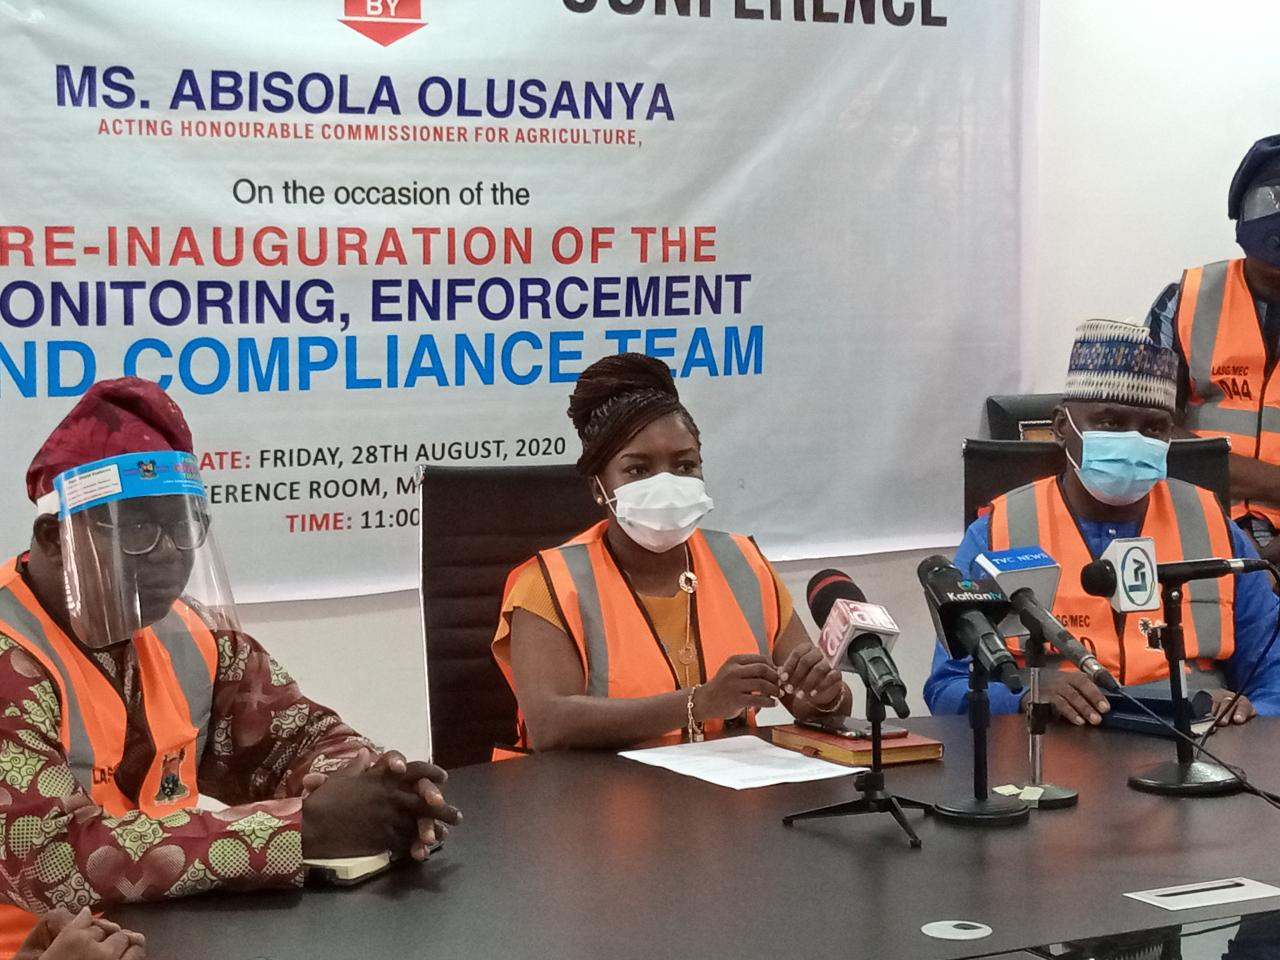 State Acting Commissioner for Agriculture, Ms. Abisola Olusanya at the re-inauguration of the Ministry's Monitoring, Enforcement and Compliance Team Meeting 28th August 2020